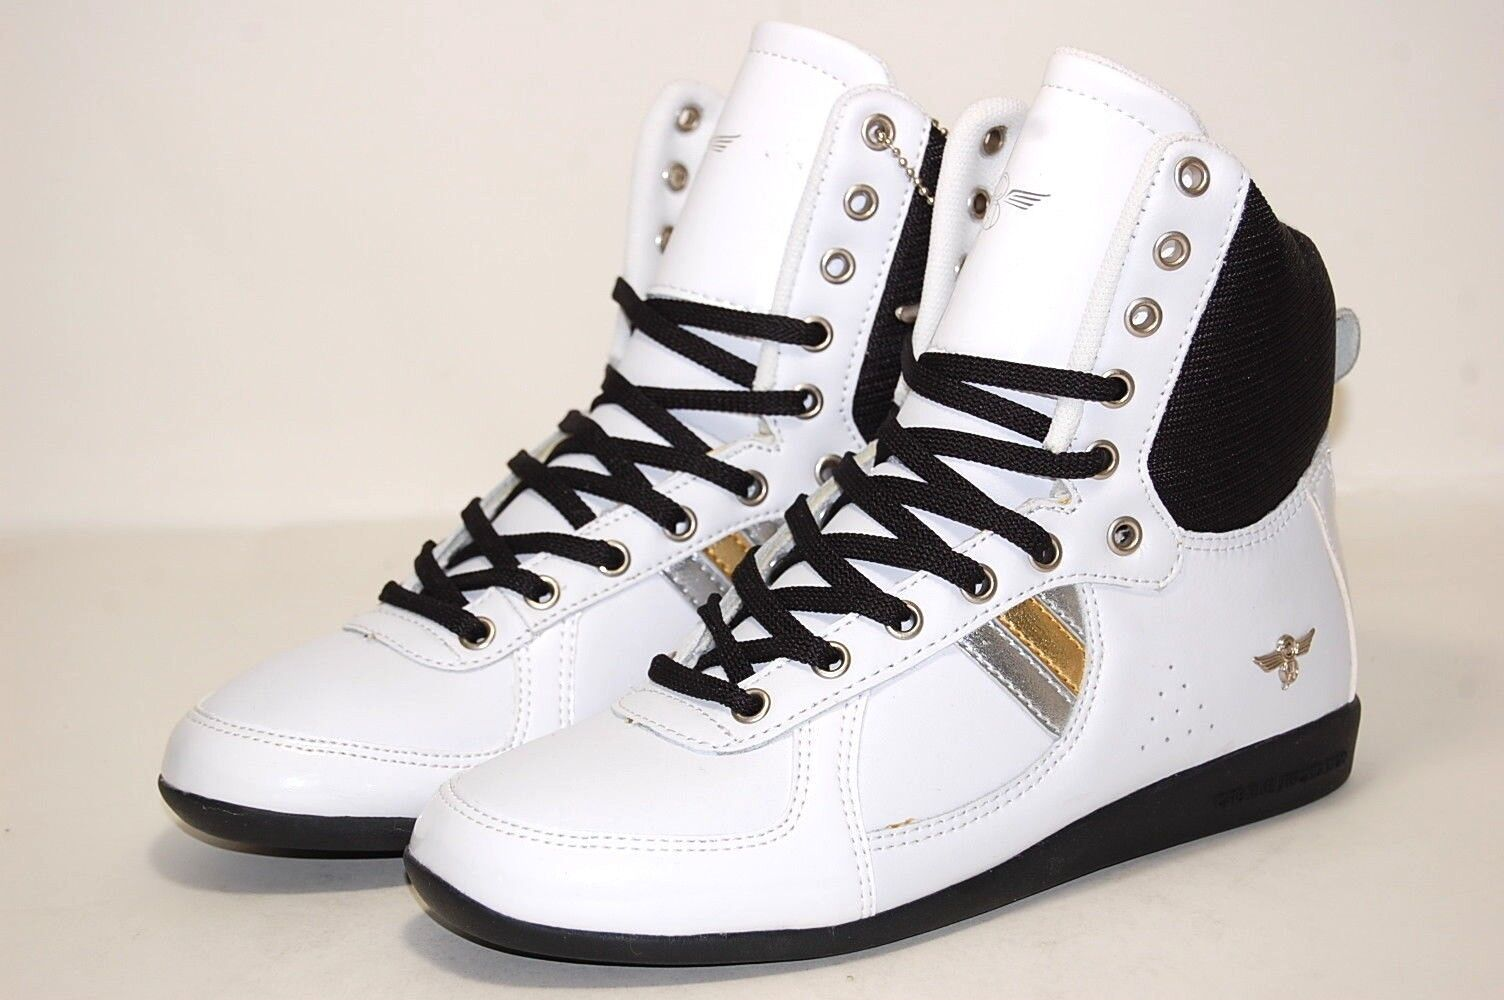 Creative Recreation WCR75HI48 BWTPT White patent Women shoes